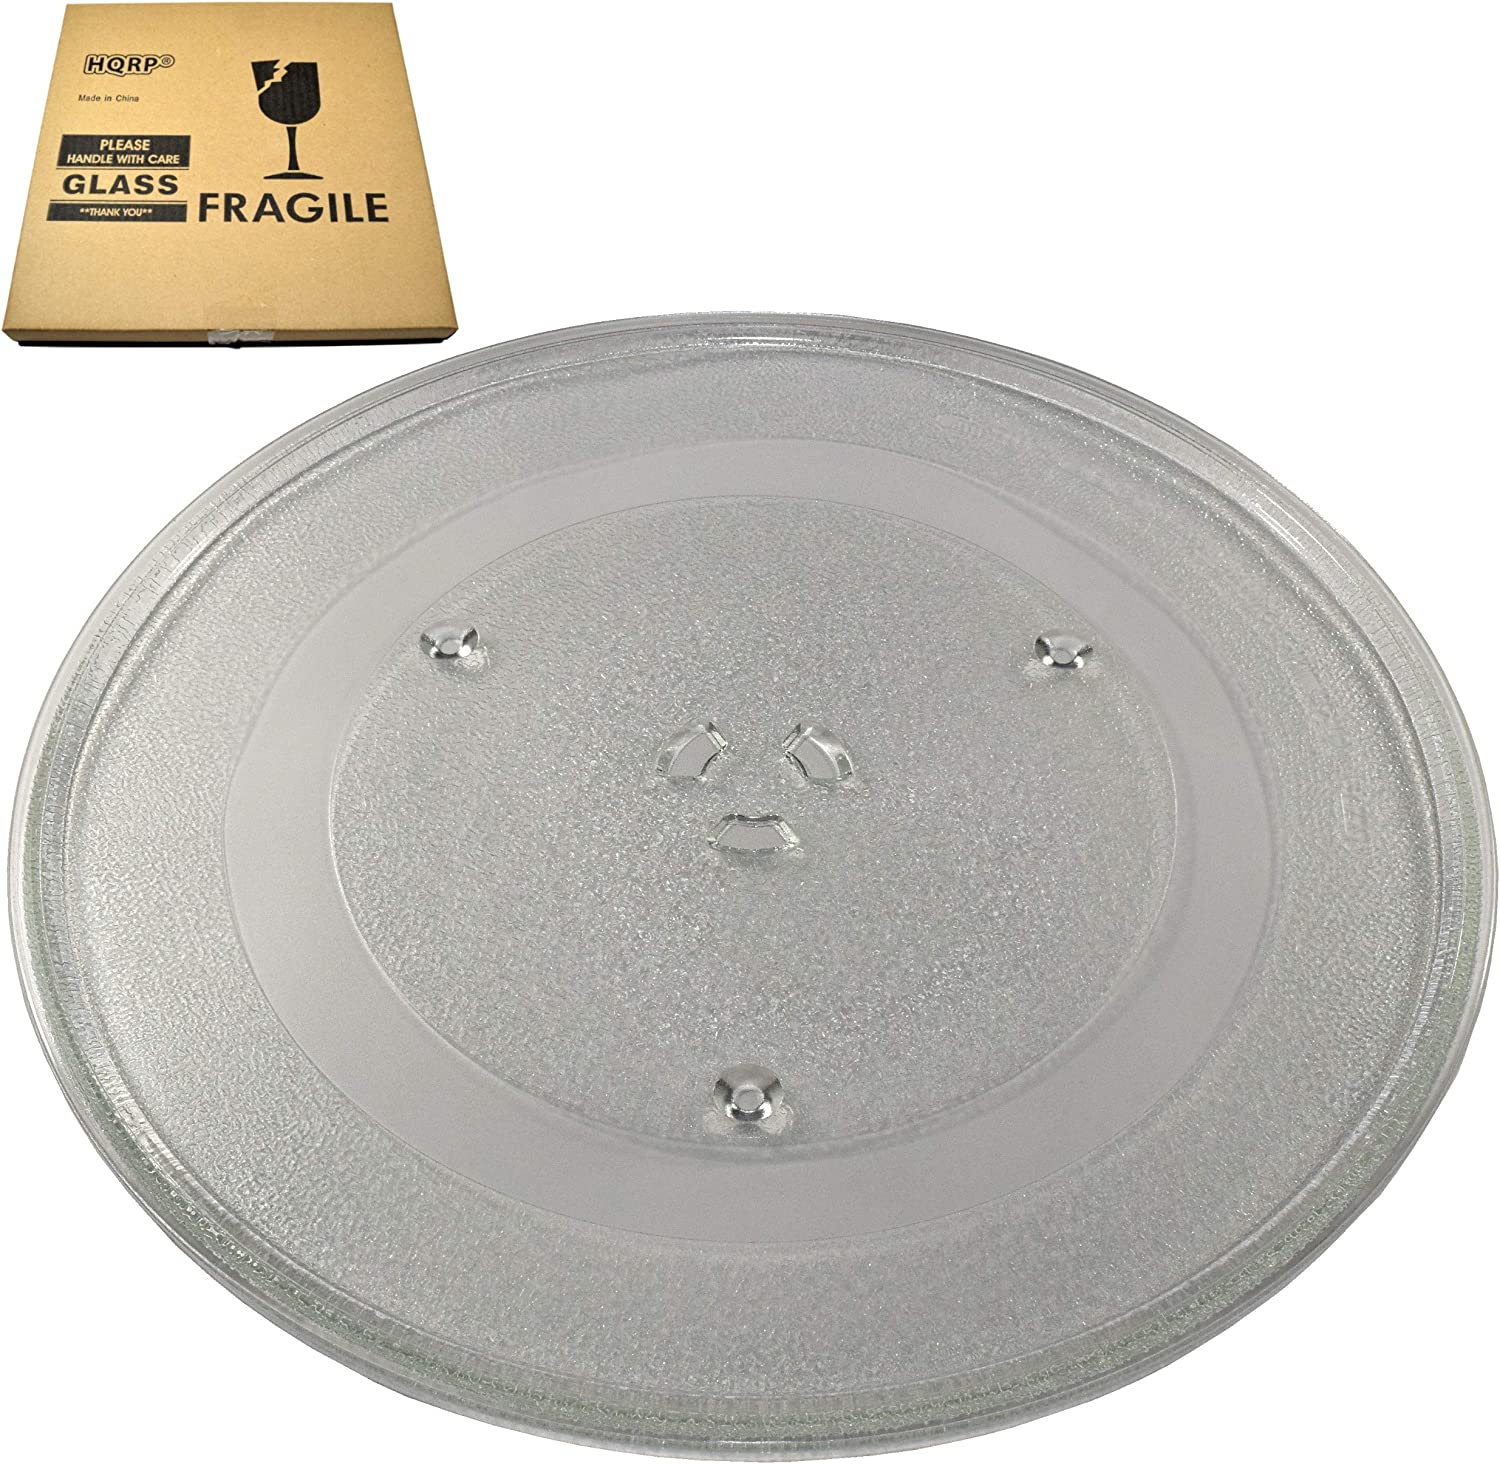 HQRP 14-1/8 inch Glass Turntable Tray fits GE WB39X10038 DVM1950DR1BB DVM1950DR1WW DVM1950DR2BB DVM1950DR2WW DVM1950ER2ES DVM1950SR1SS DVM1950SR2SS DVM7195DF1BB Microwave Oven Cooking Plate 360mm